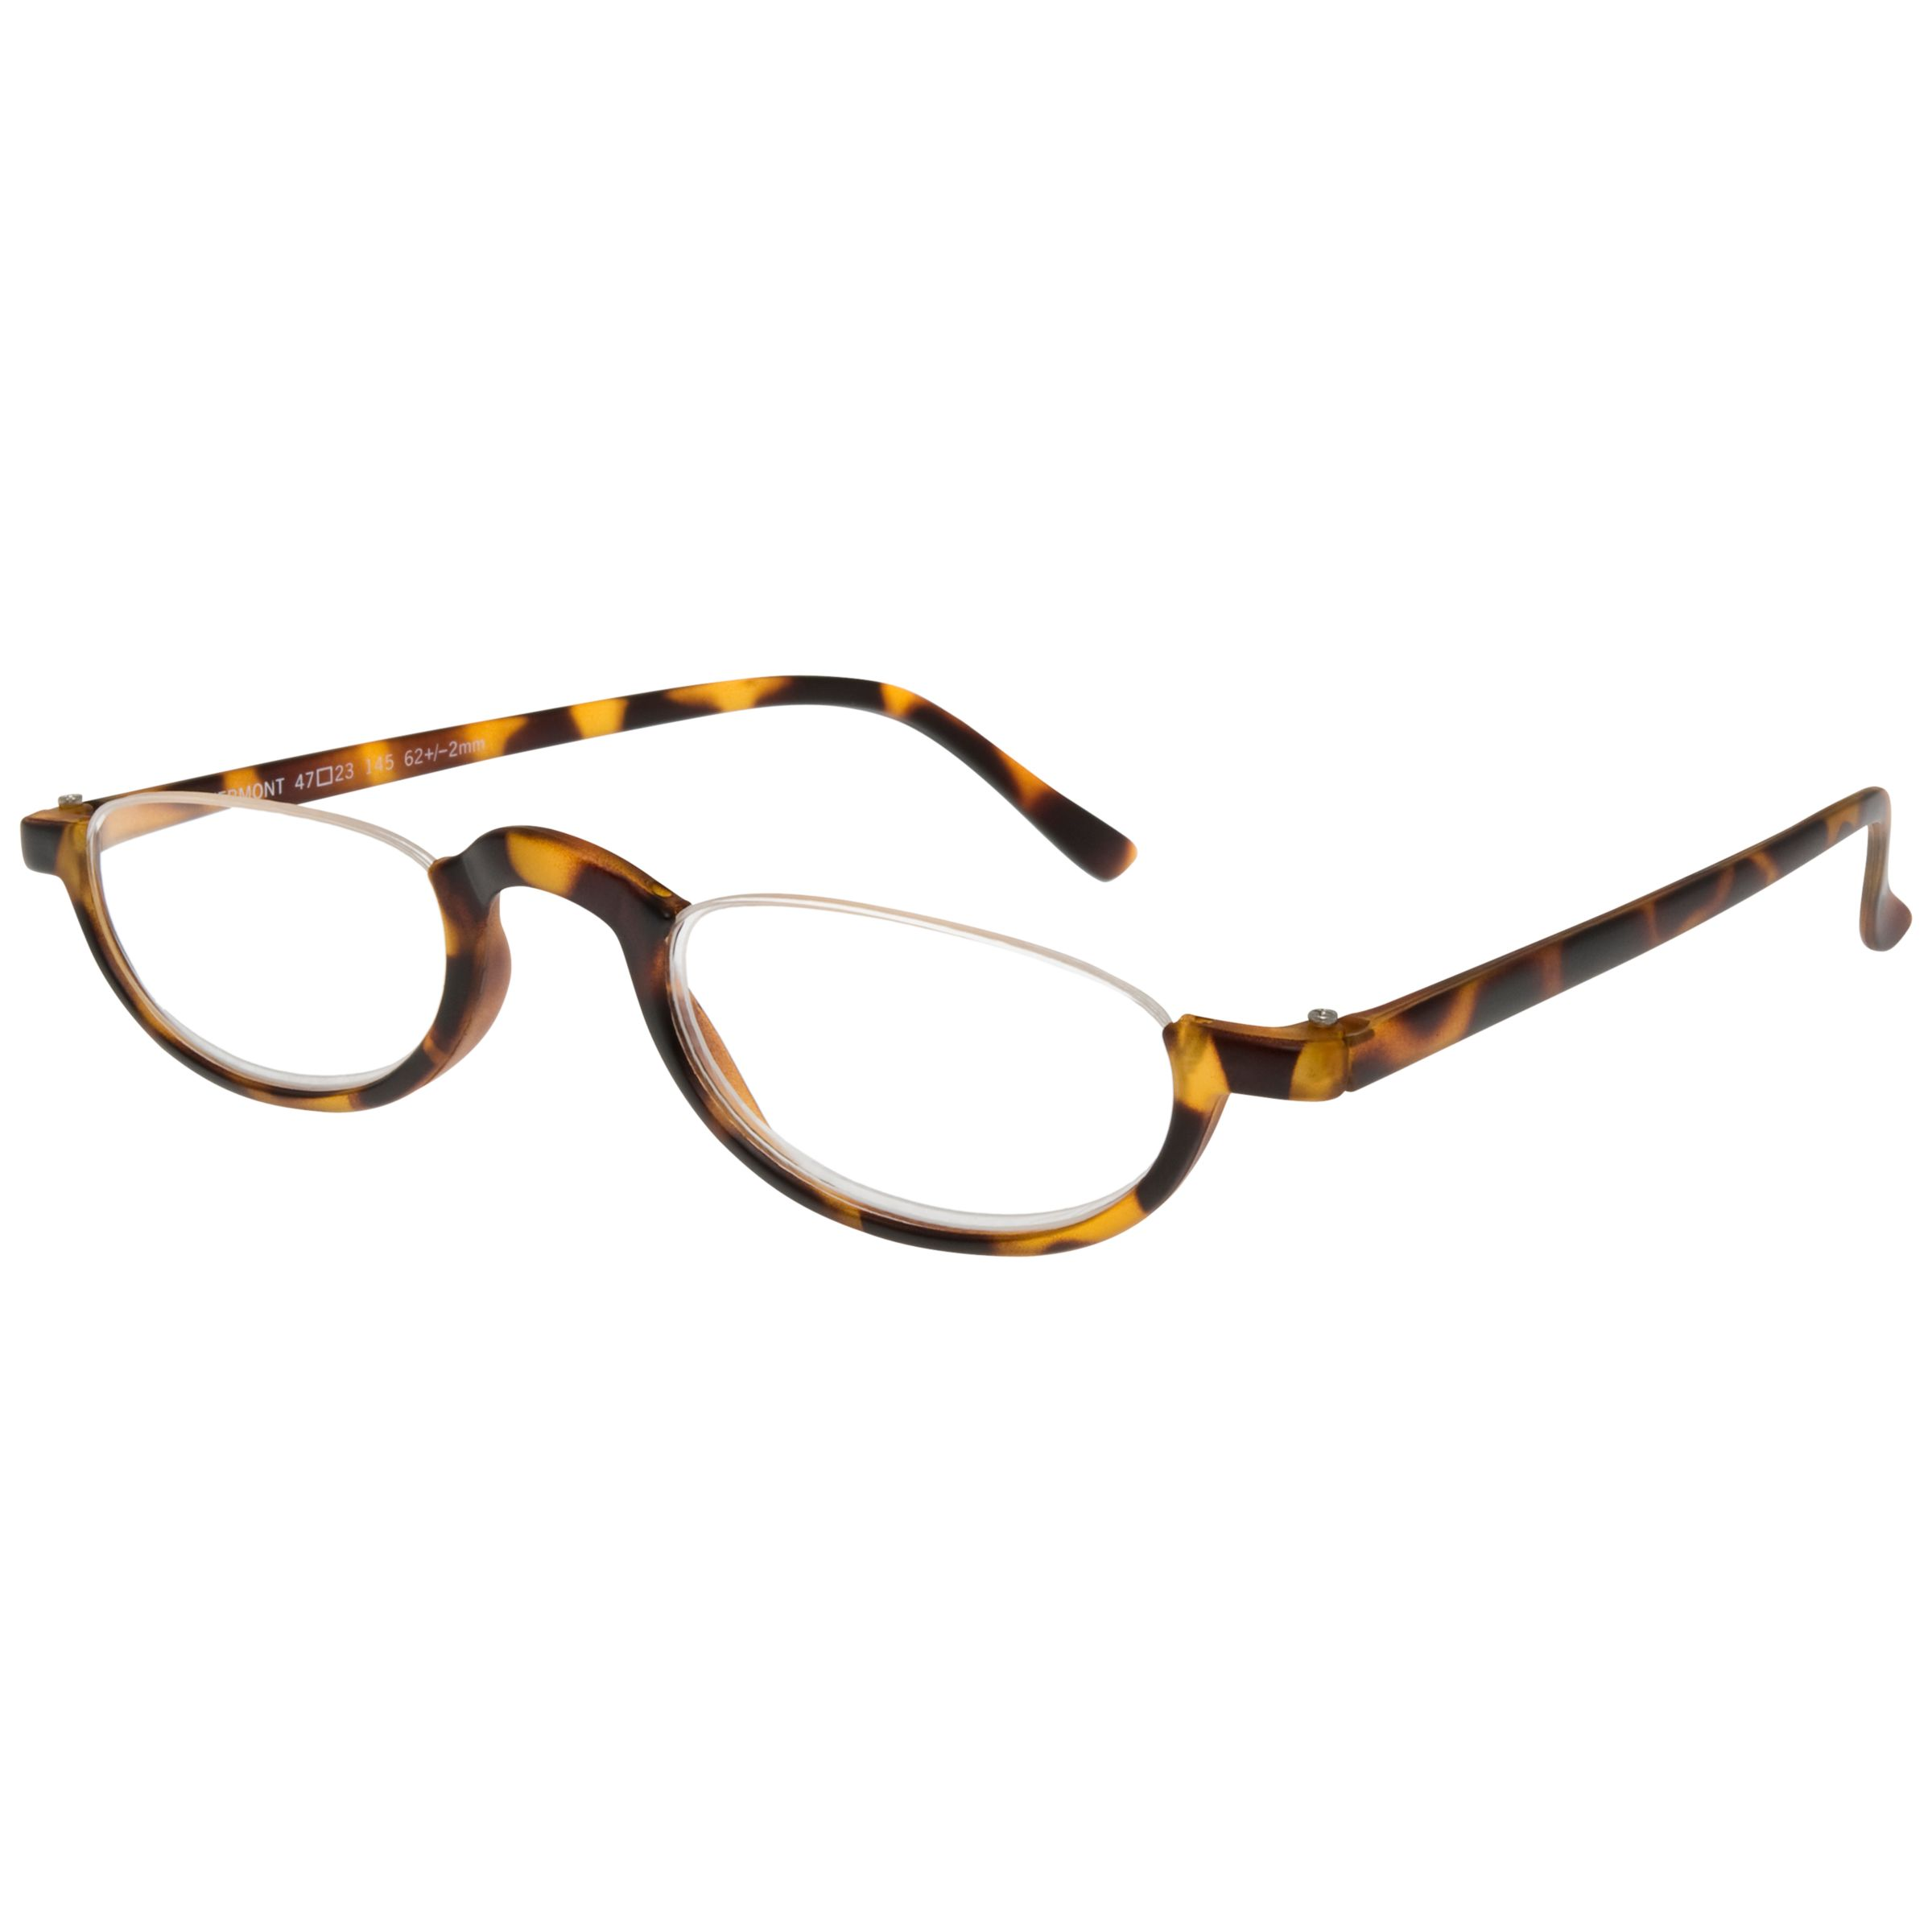 Magnif Eyes Magnif Eyes Vermont Unisex Ready Reader Glasses, Shell